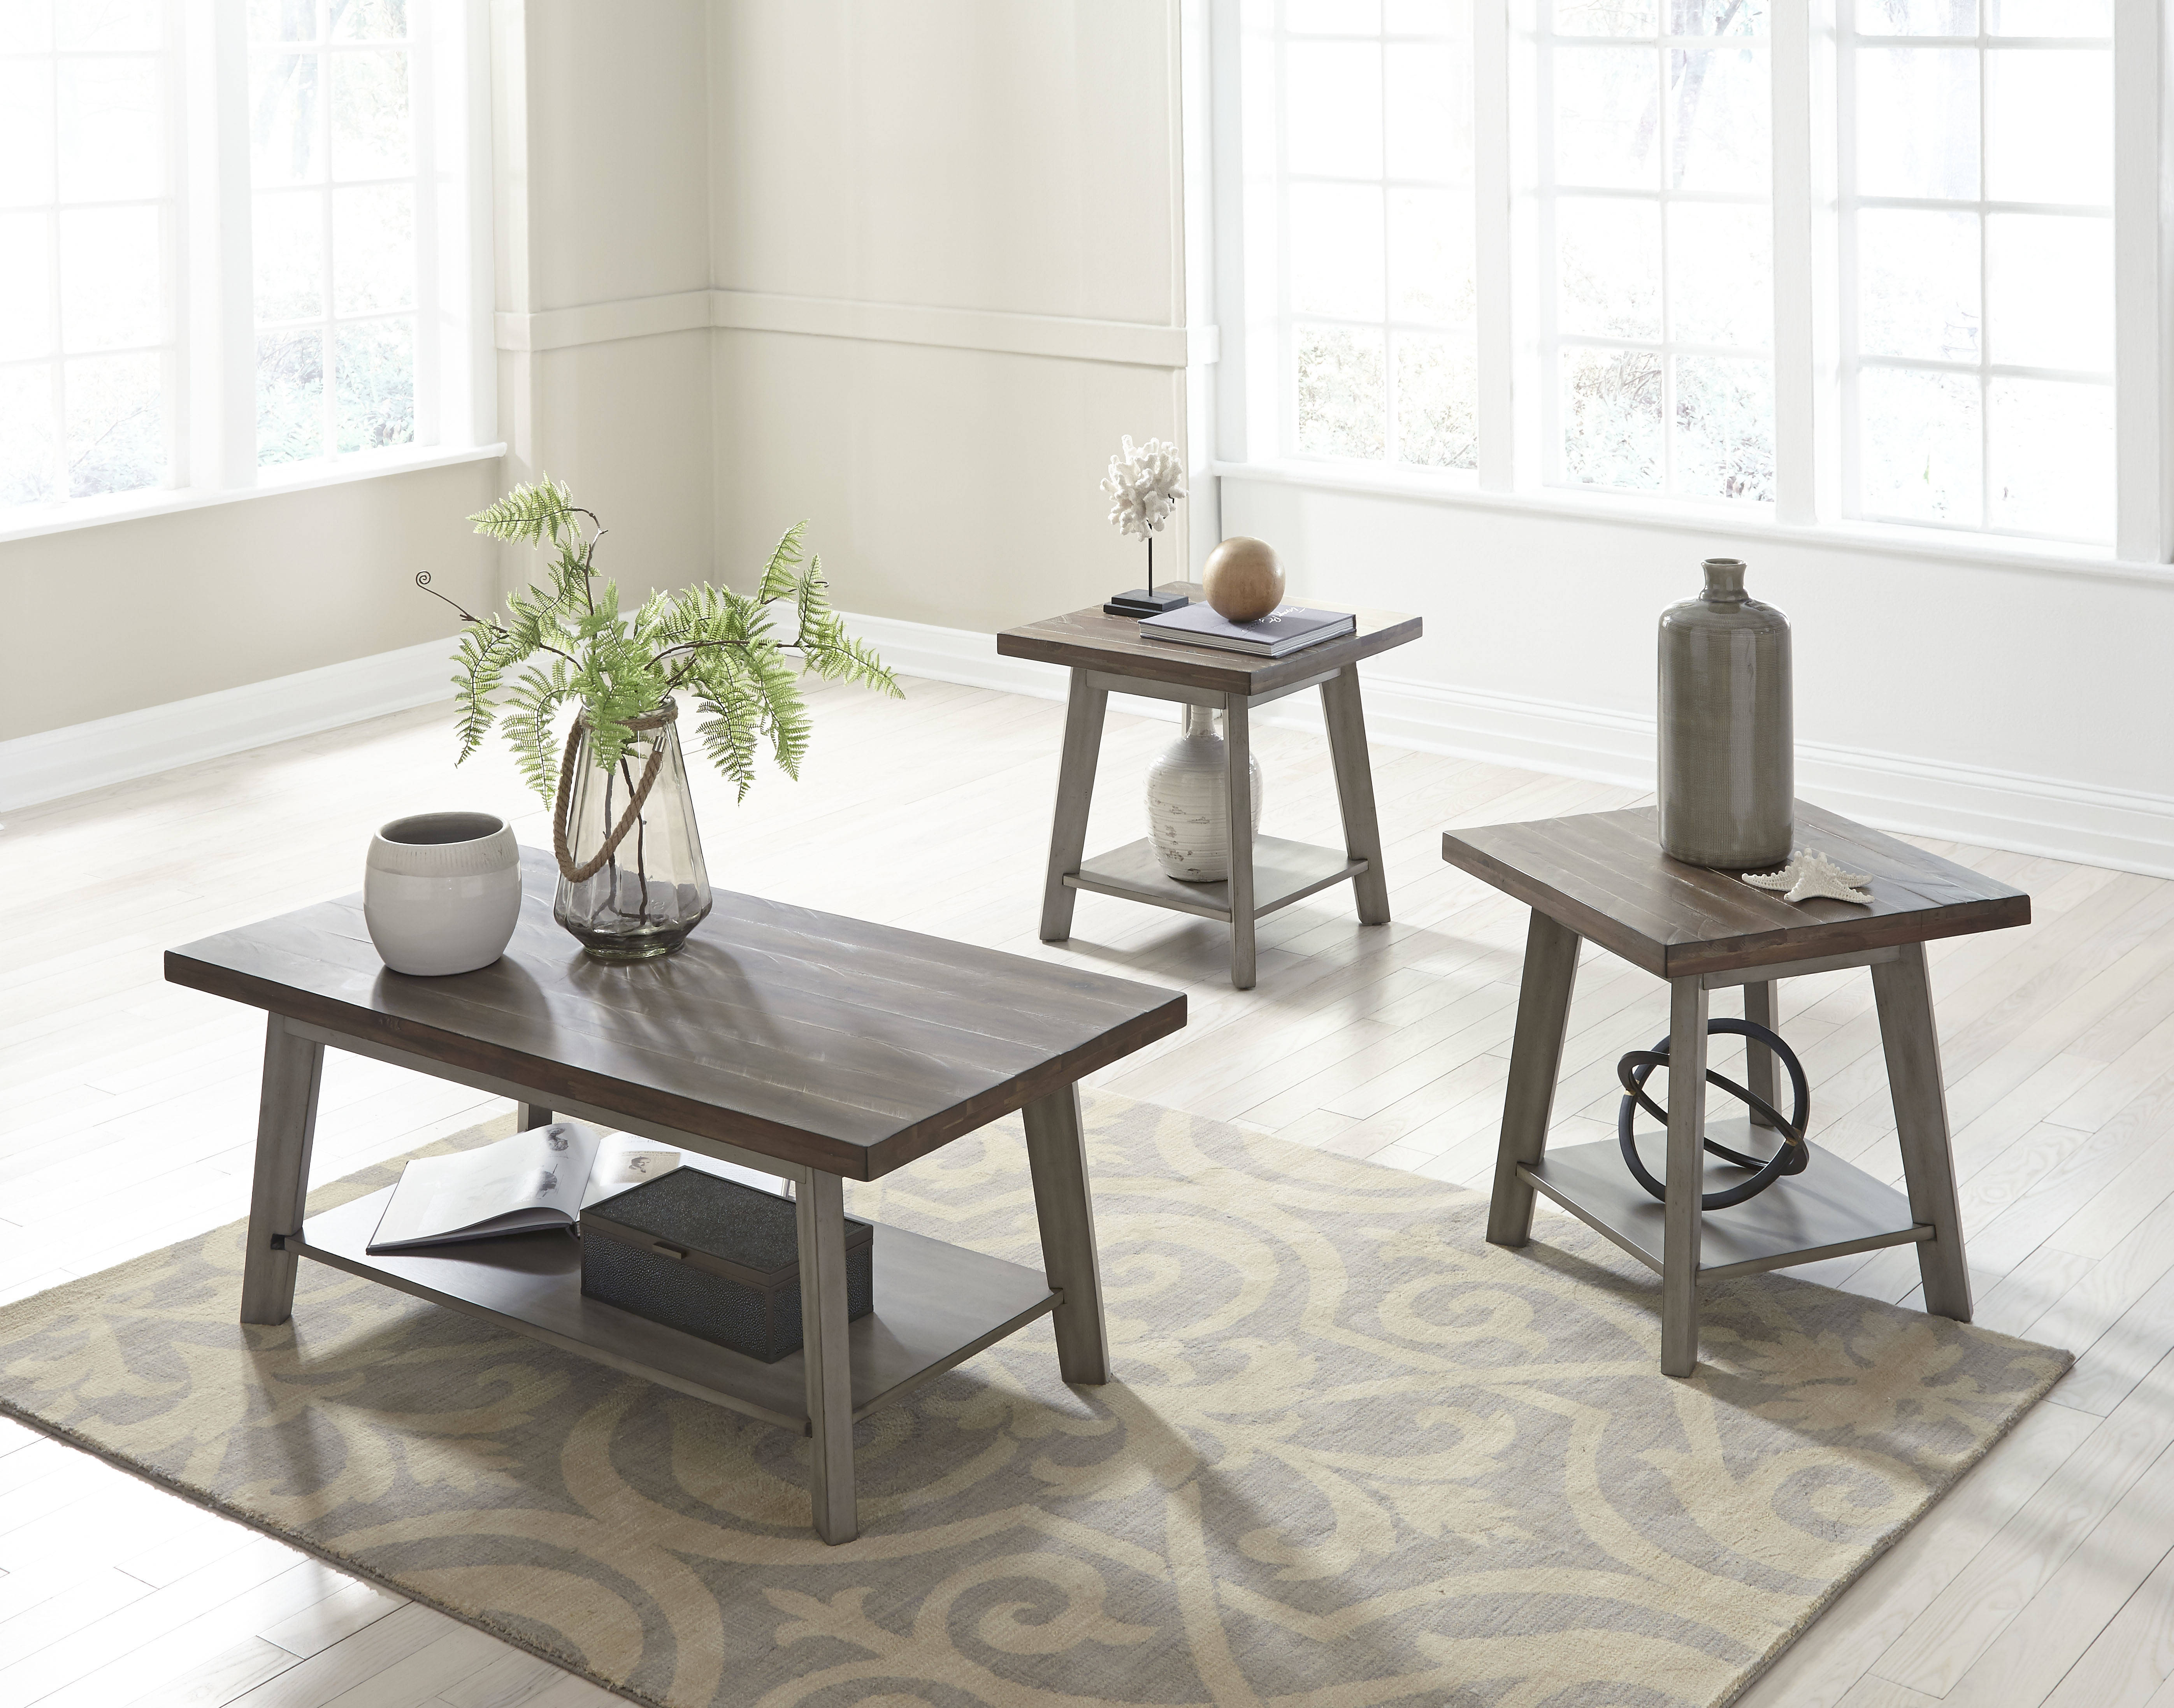 Standard Furniture Fairhaven Oak Grey 3 In 1 Pack The Cly Home